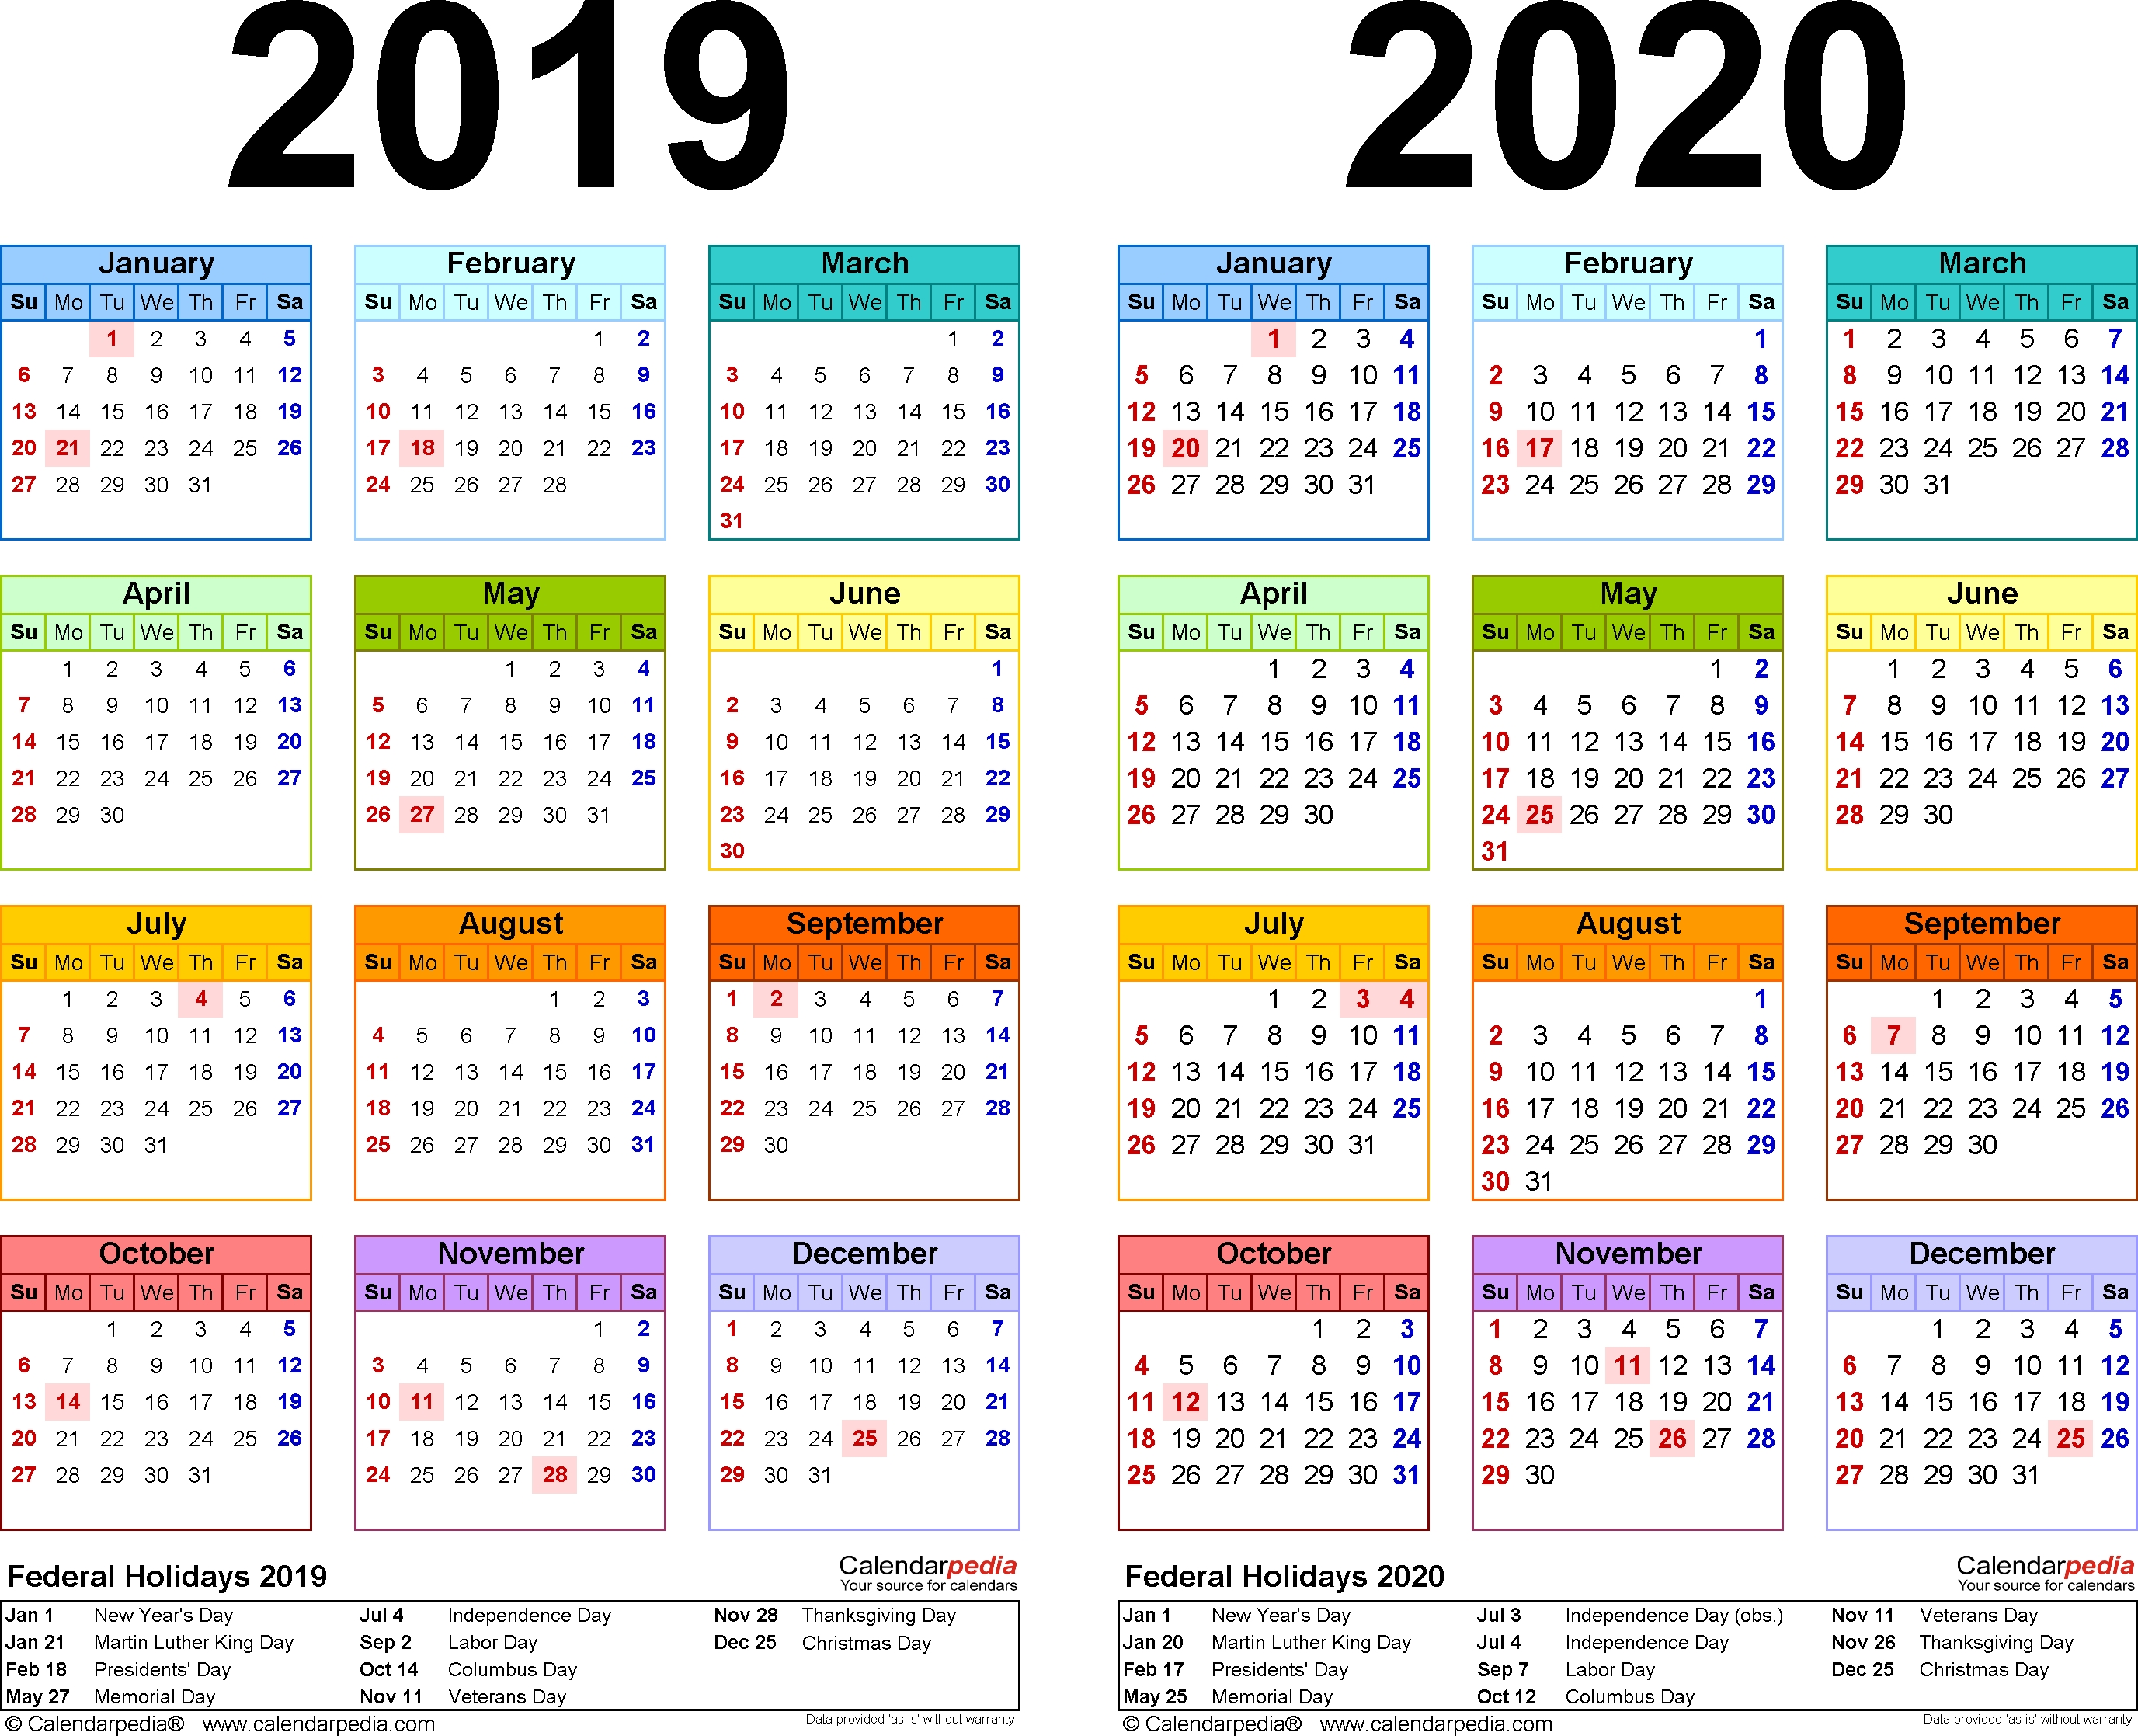 2019 2020 School Year Calendar With Holiday Us - Google-2020 Calendar Template With Catholic Holidays